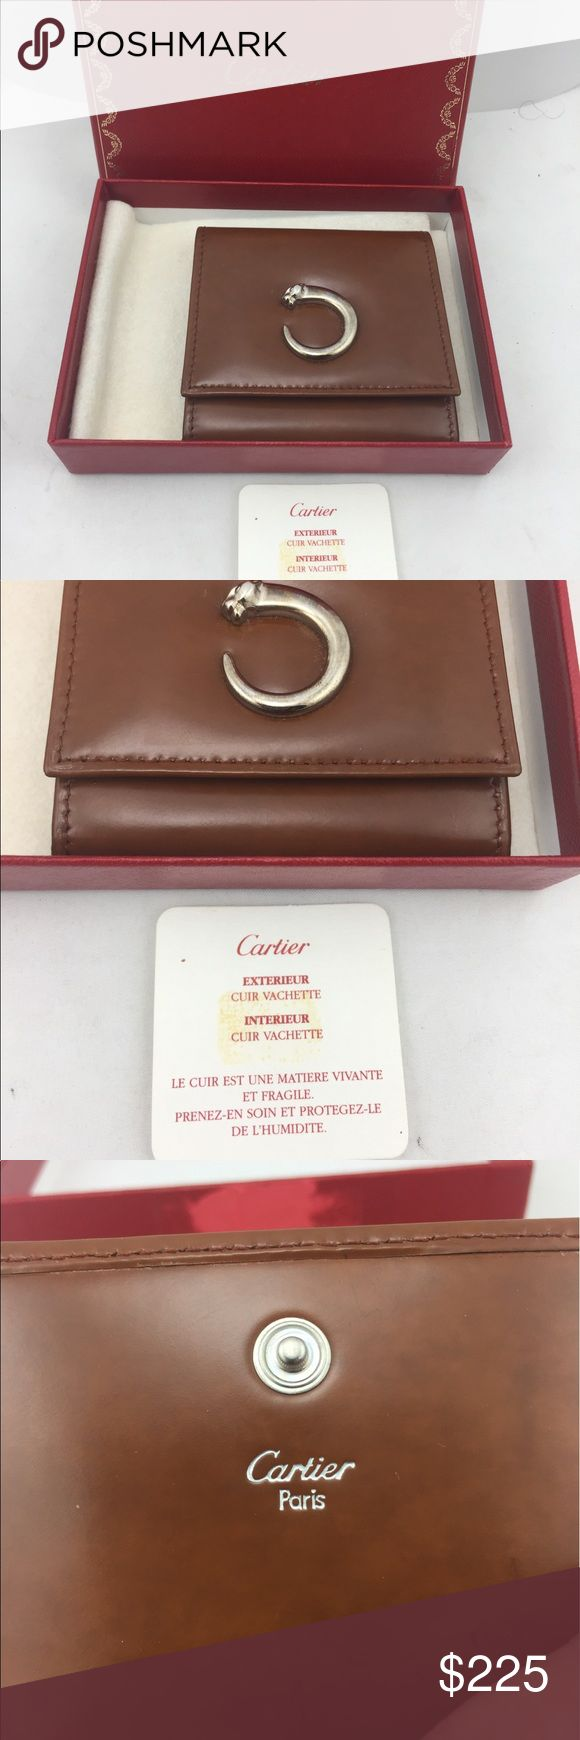 Vintage Cartier Panthere Jasper Square Coin Purse! In excellent condition.  Does not appear to have been used.  In original box with original padding with Cartier on the material. Cartier Bags Wallets